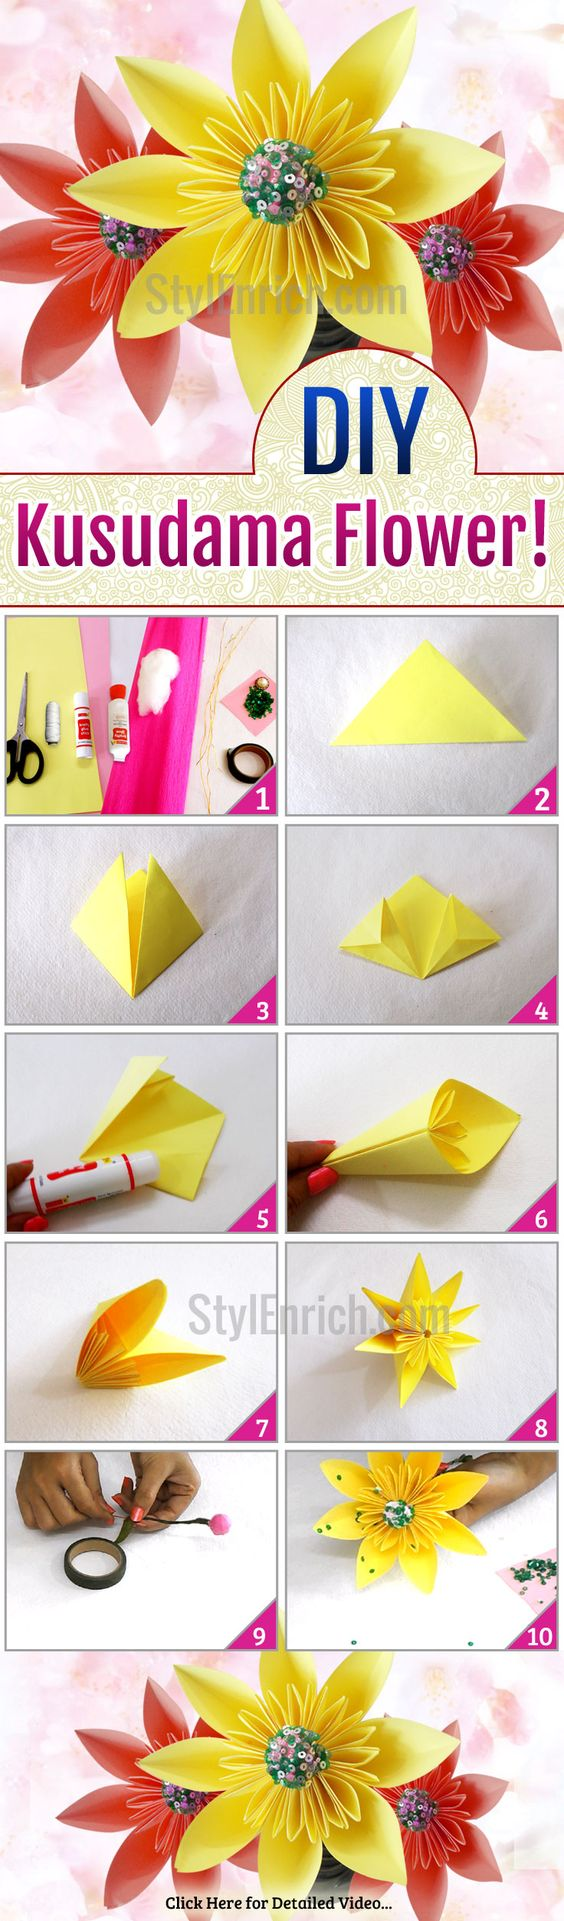 Want to know how to make beautiful & super easy #DIYPaperFlowers? Here are the step by step instructions to understand how to make easy paper flowers. Enjoy this DIY #Origami Kusudama flowers making and decorate your home with this stunning paper craft idea!: